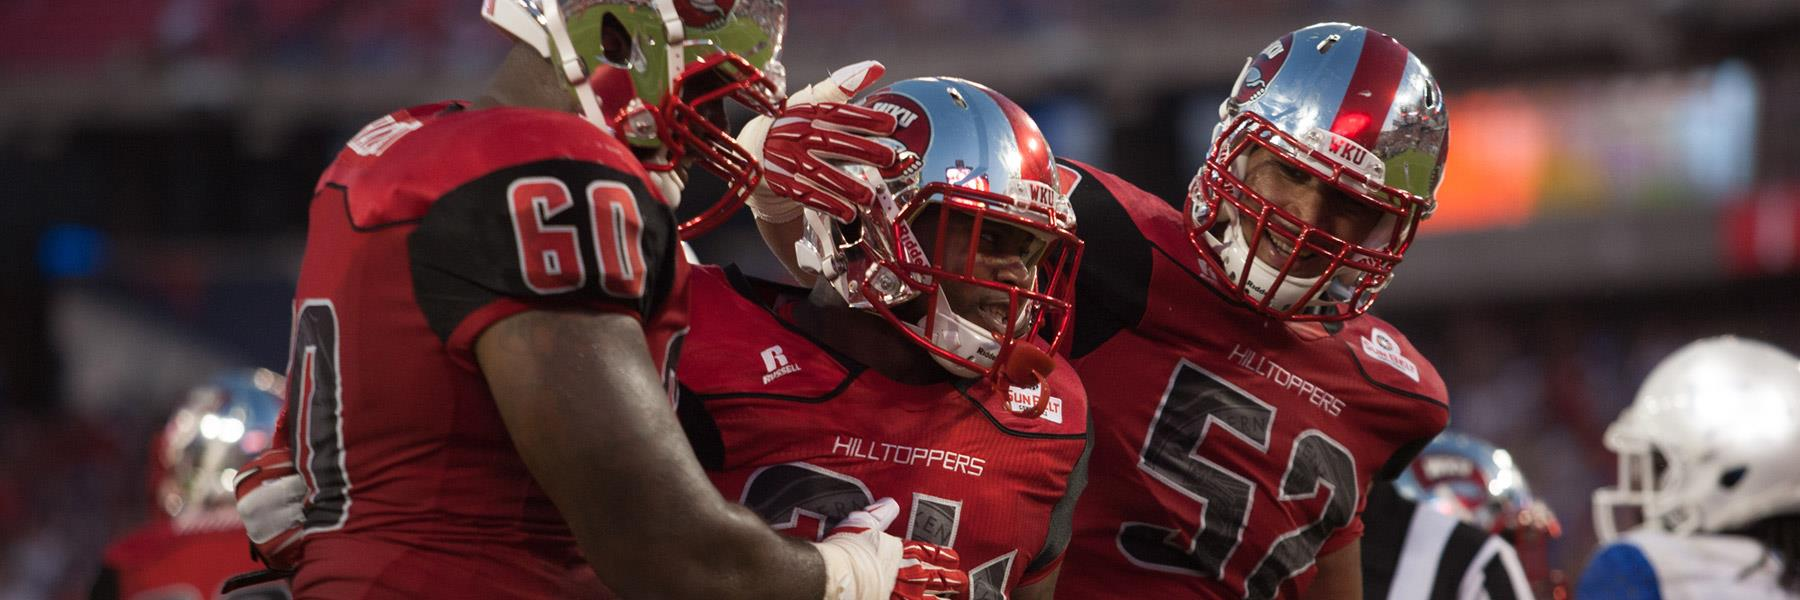 WKU welcomes UTSA this Saturday.